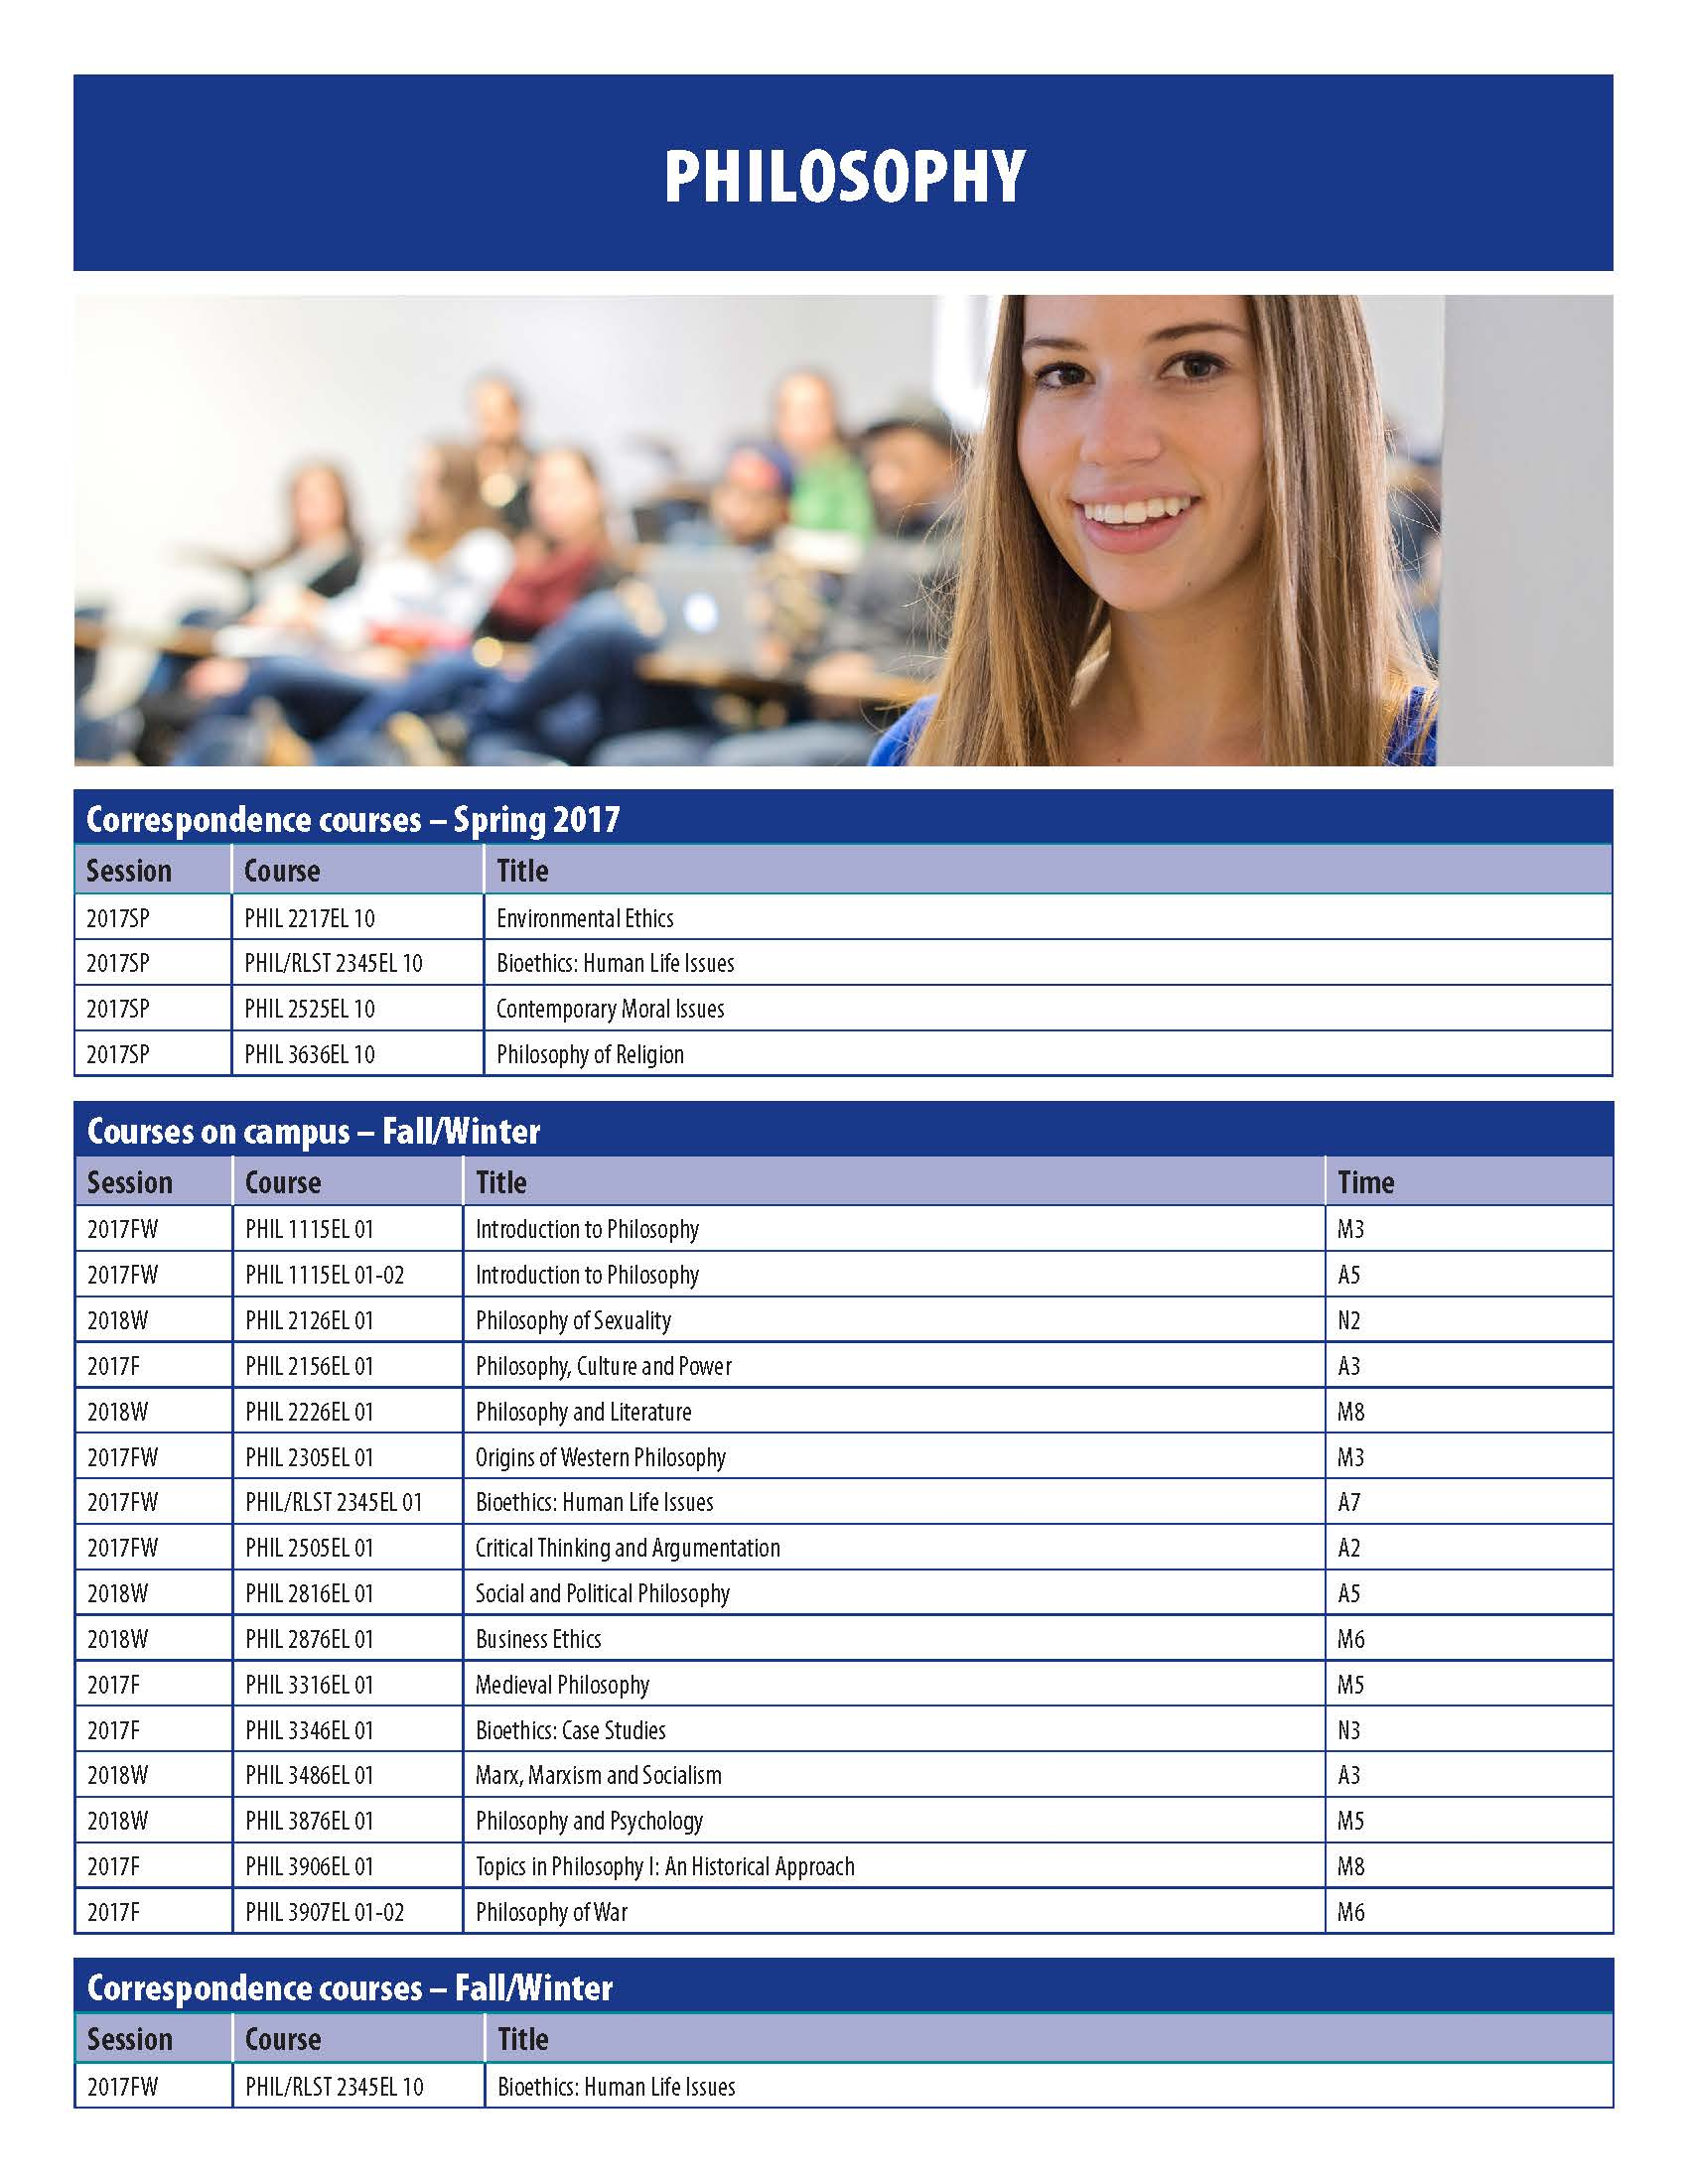 US CourseTimetable 2017 2018 PROOF Page 07